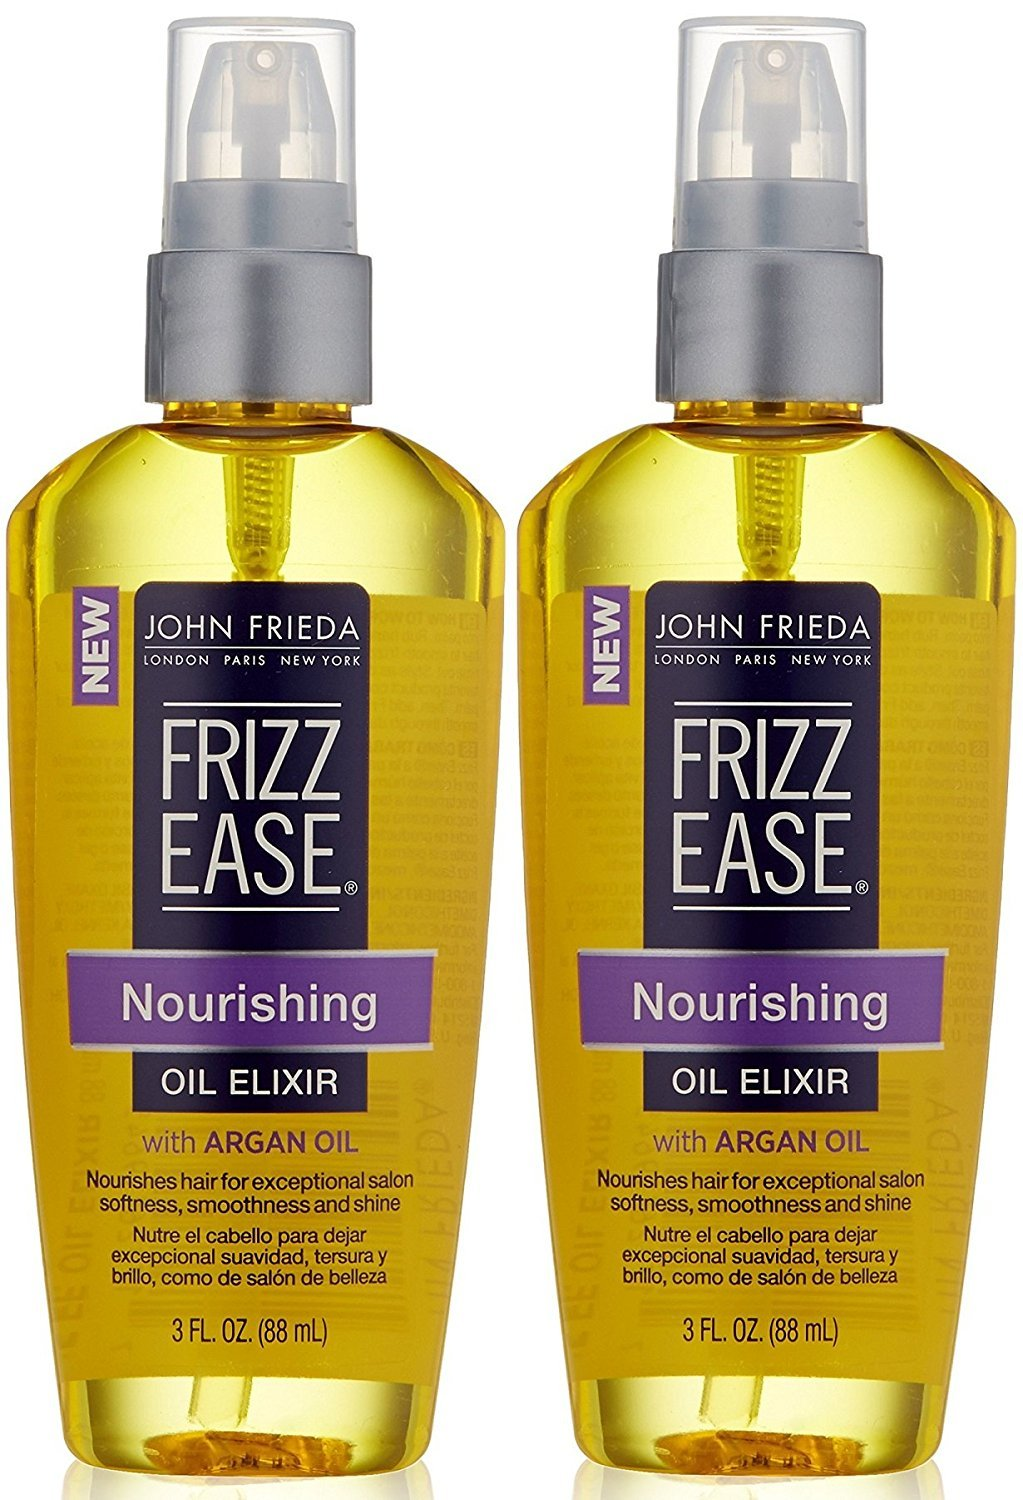 John Frieda Frizz-Ease Nourishing Oil Elixir 3 Ounce (88ml) (2 Pack)